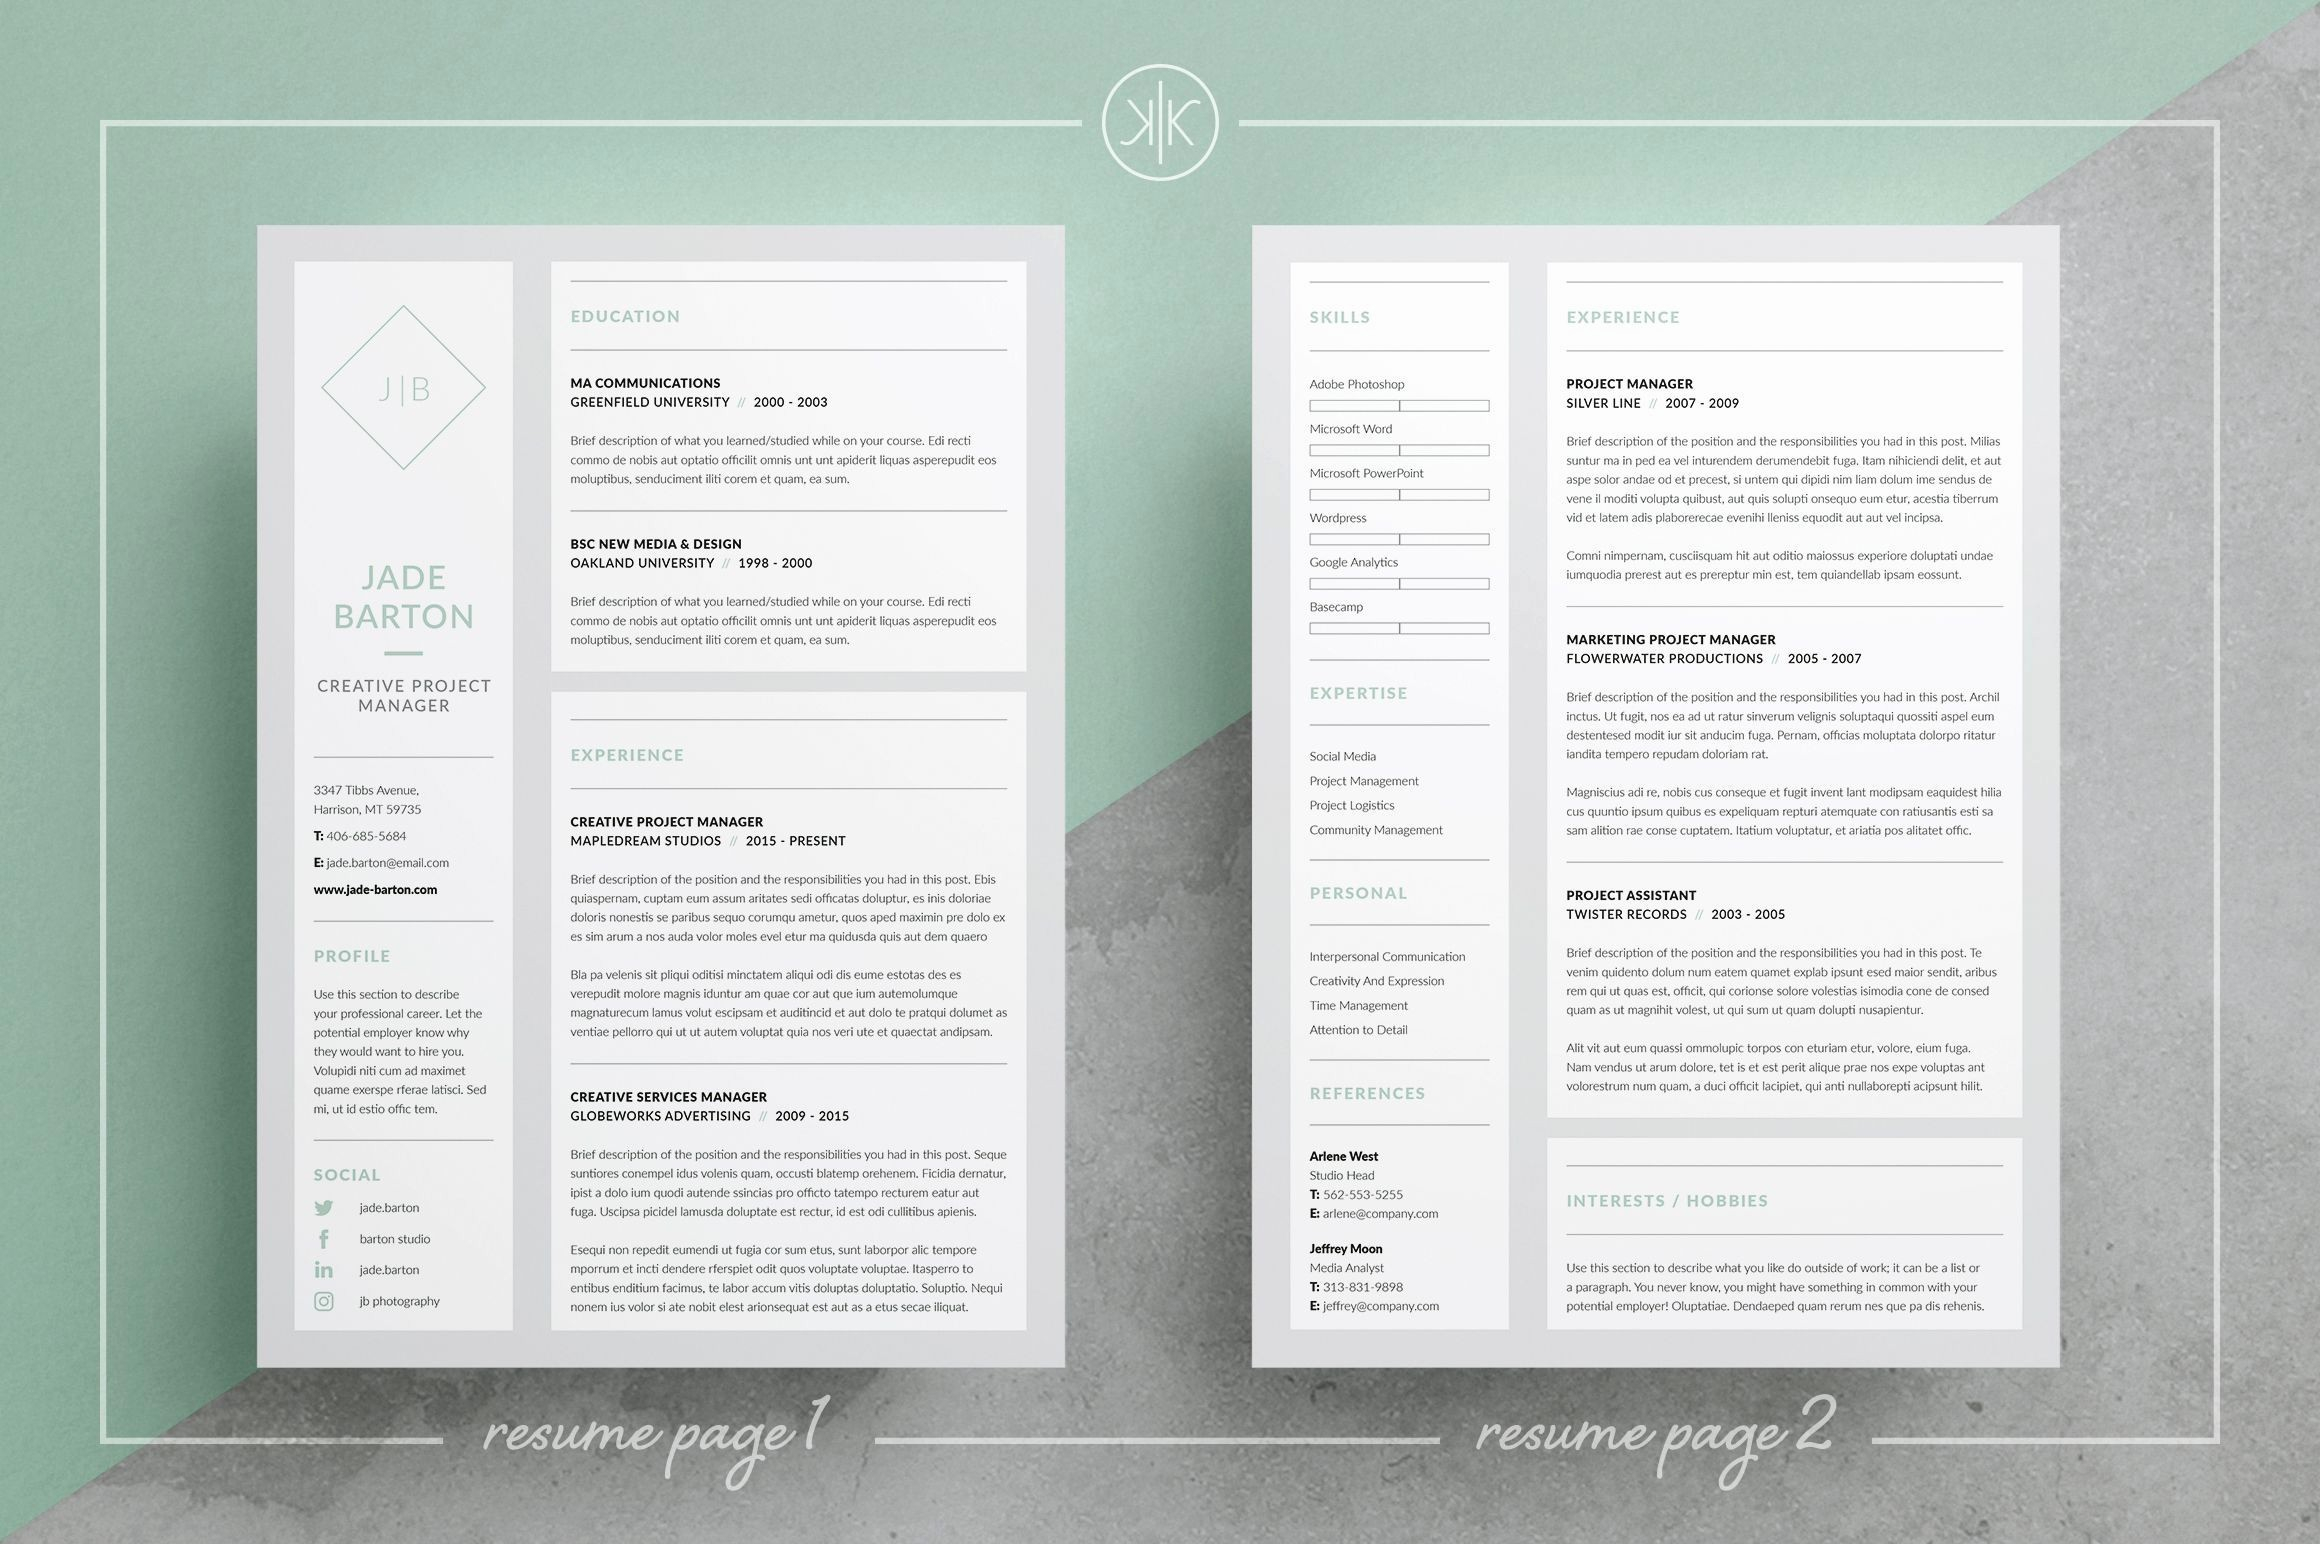 Word 2003 Resume Template - Word Resume Templates Lovely 20 Awesome High School Resume Template